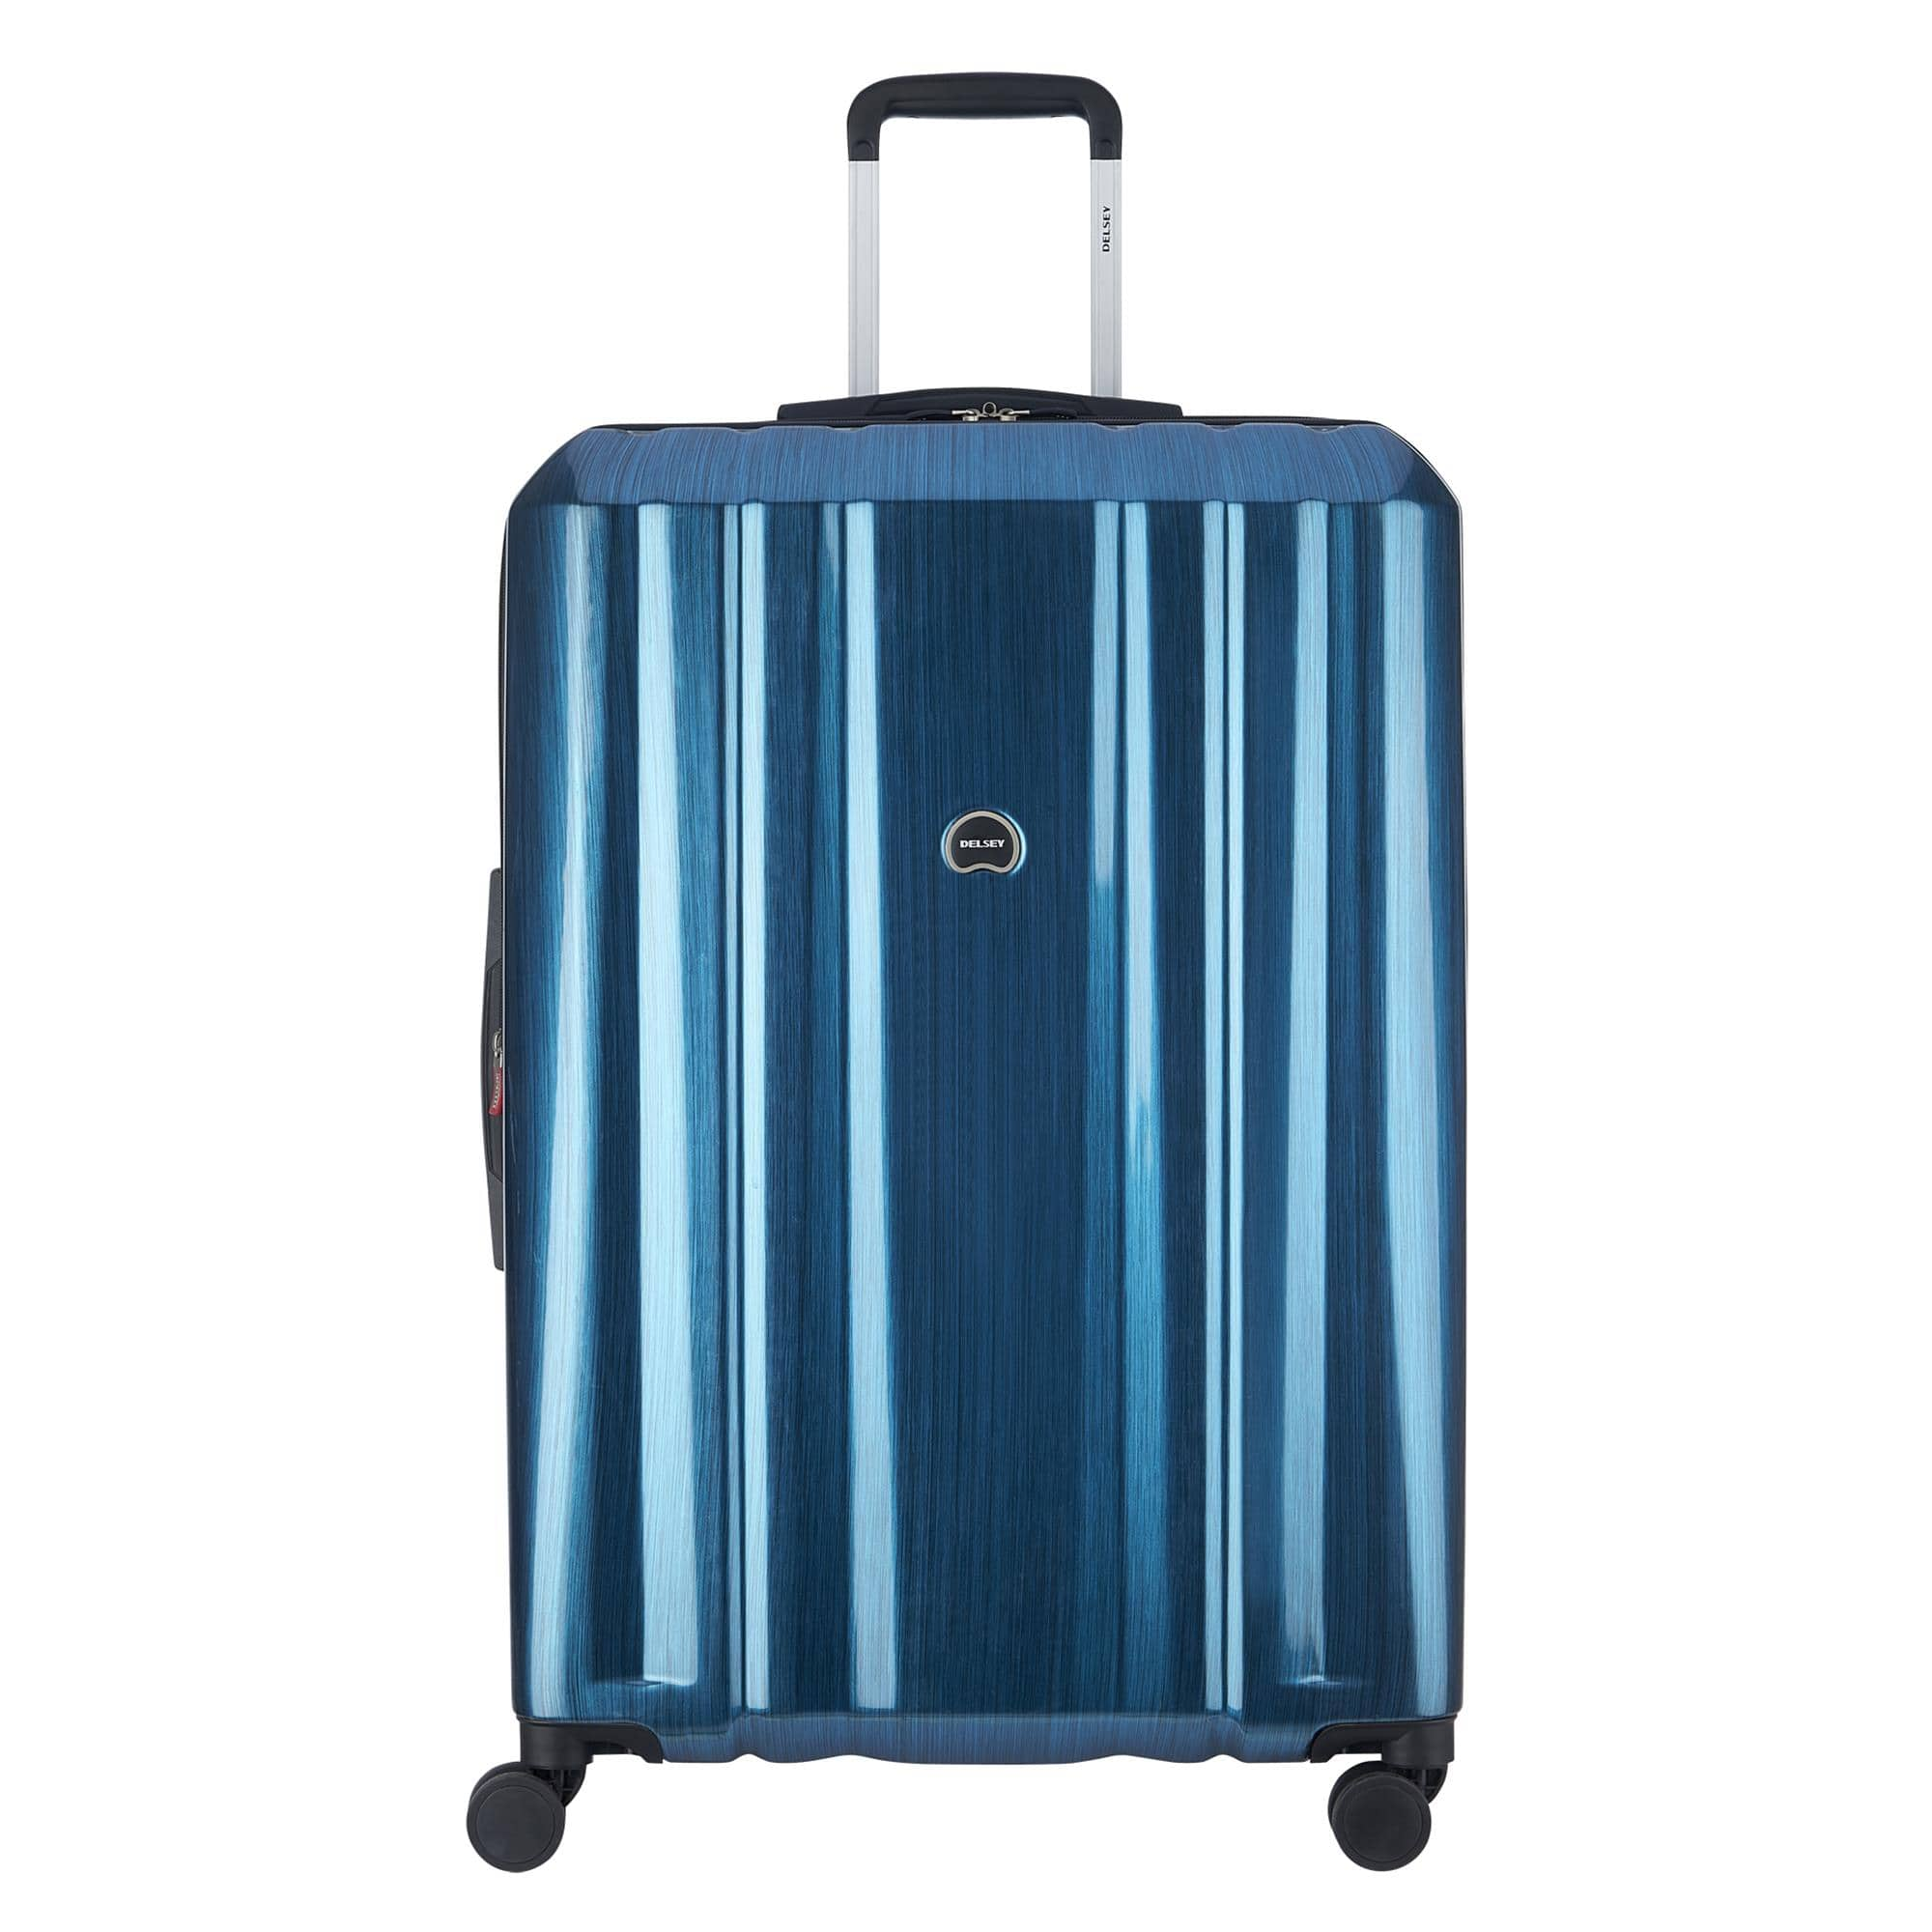 DELSEY Paris Luggage Cyber Monday Sale: 50% off Sitewide + additional 30% off coupon + FS